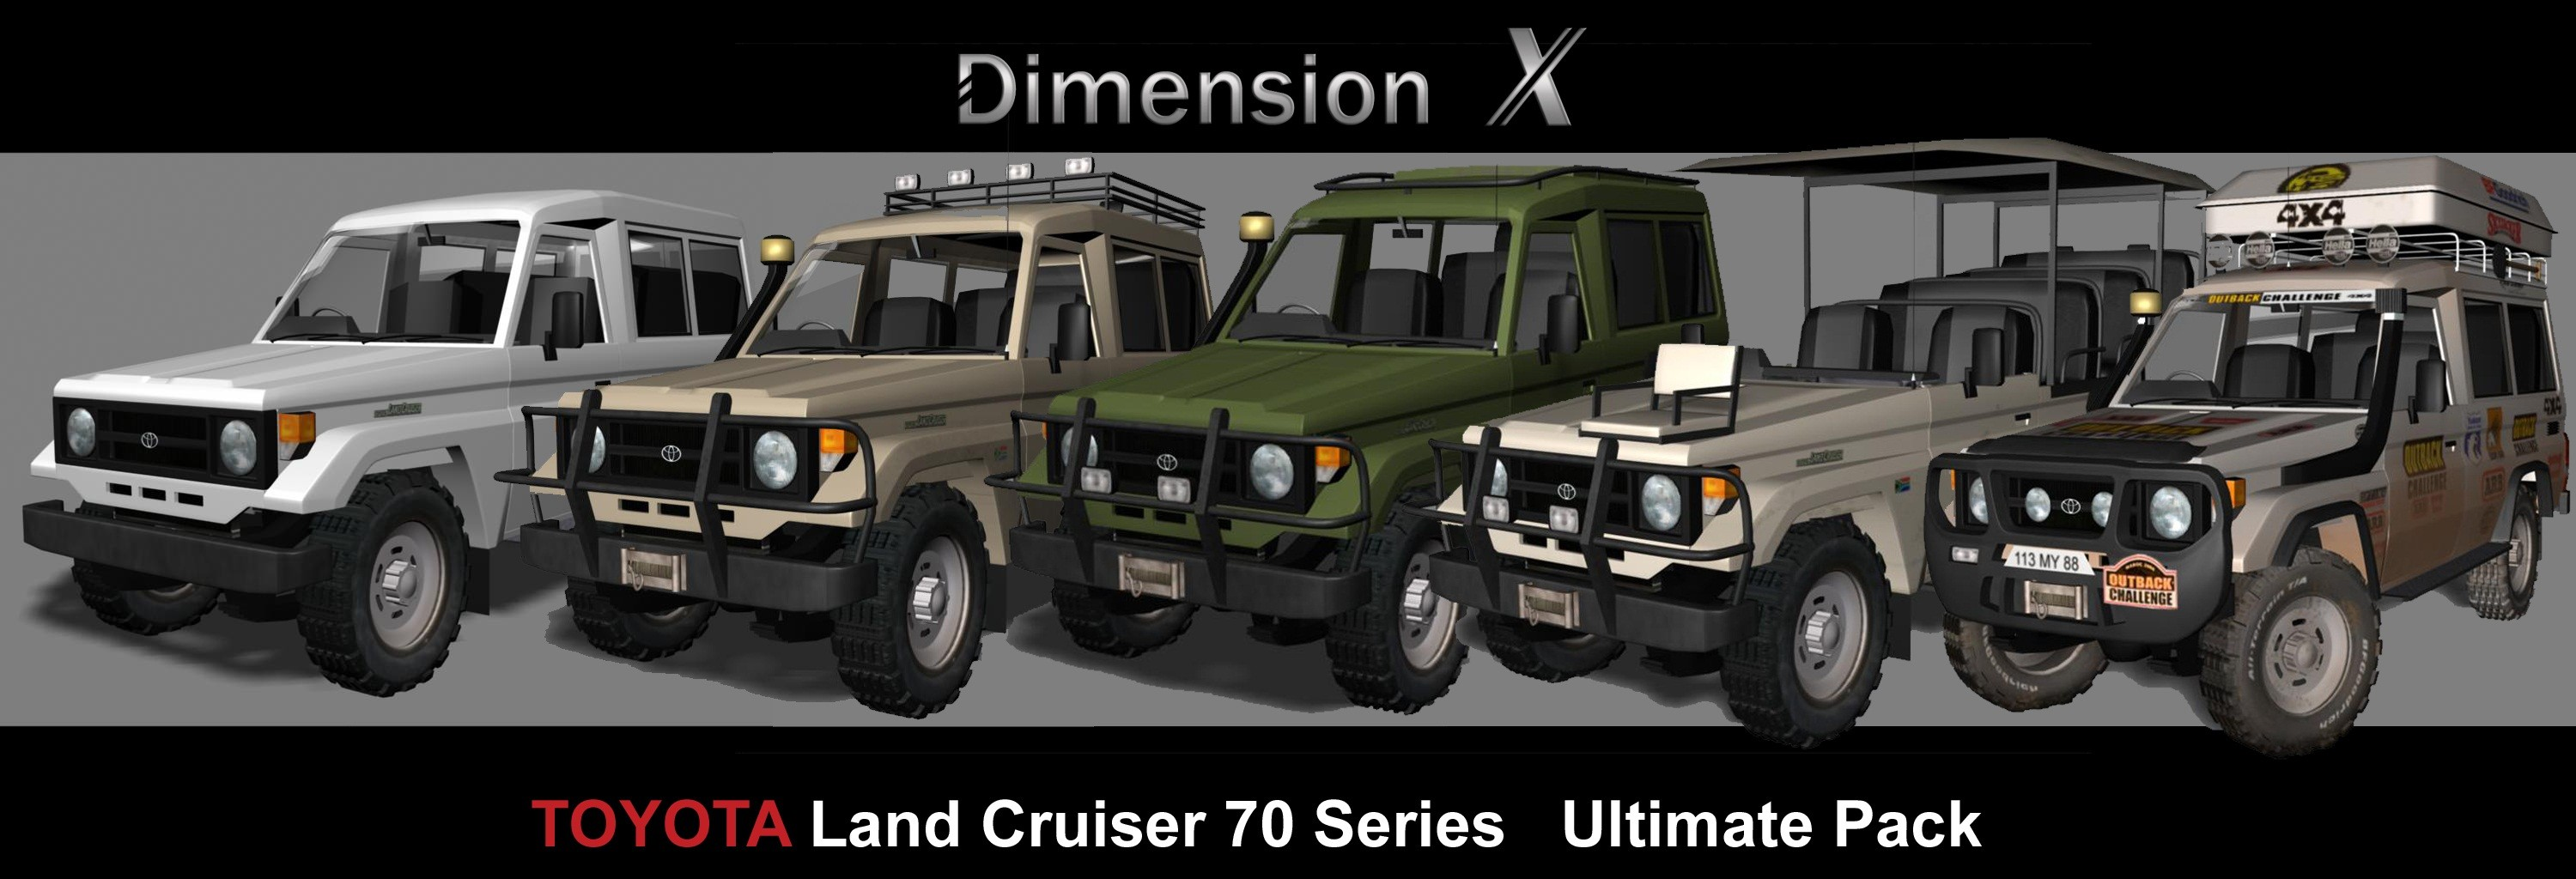 Toyota Land Cruiser Ultimate pack